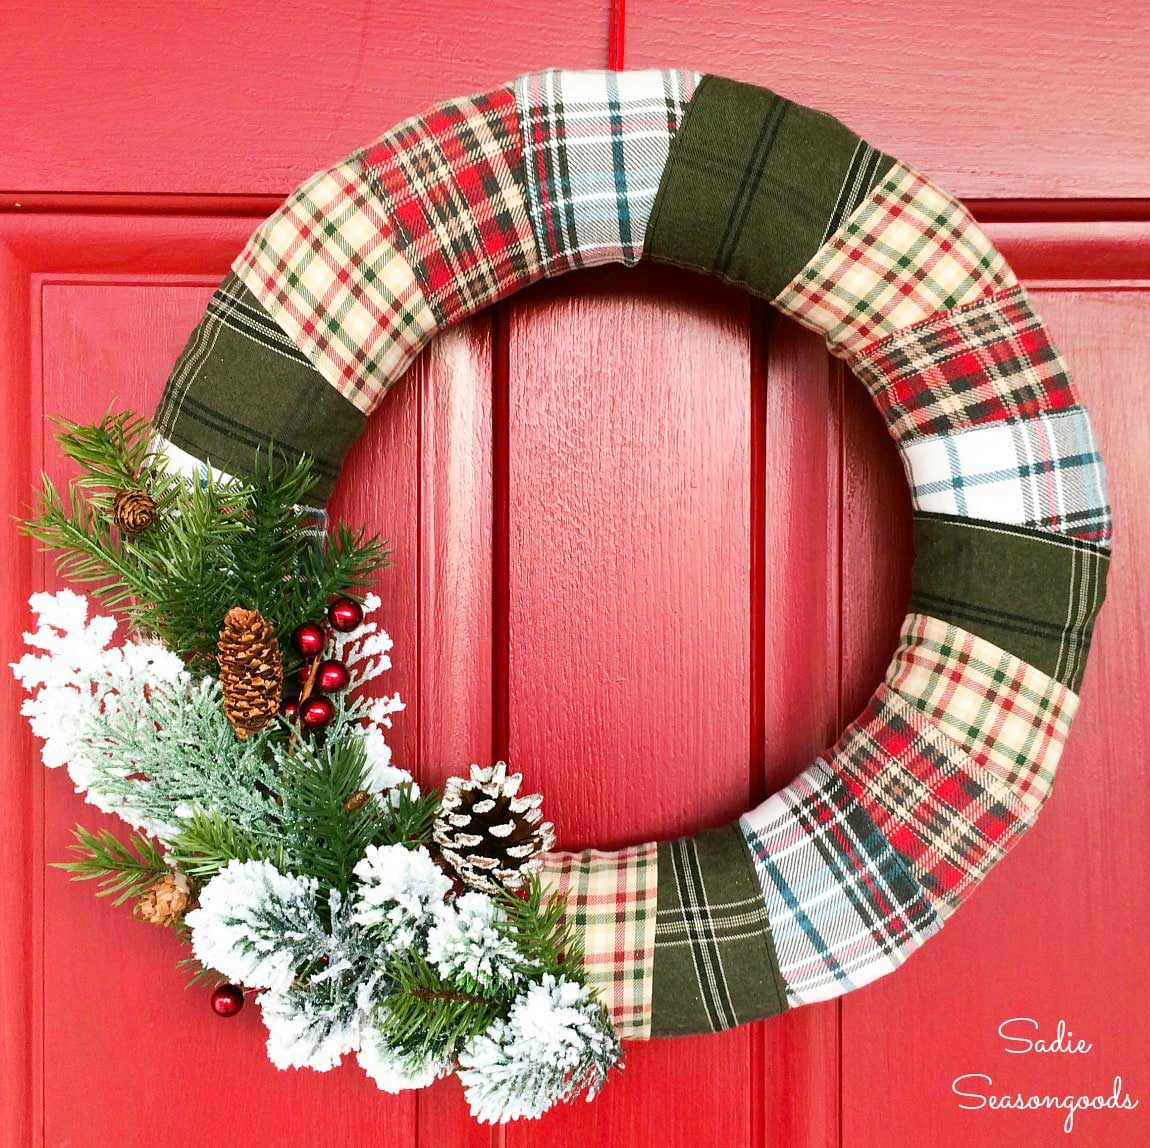 Plaid Christmas wreath made from recycled flannel shirts